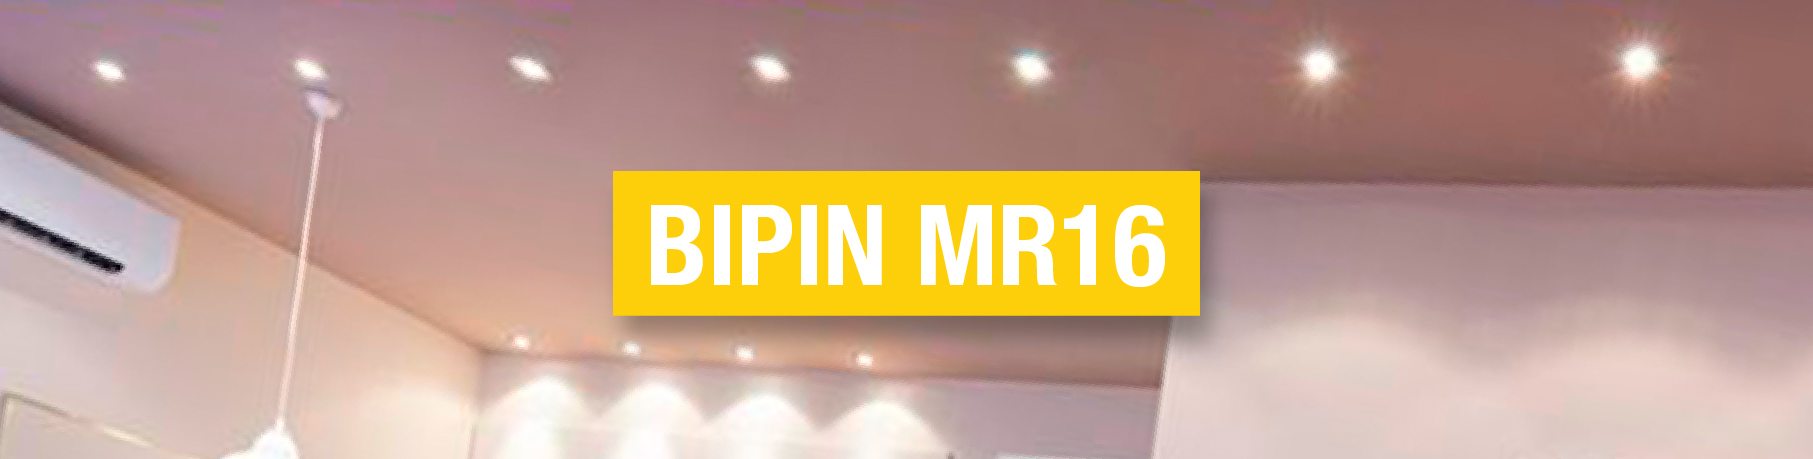 Bipin MR16